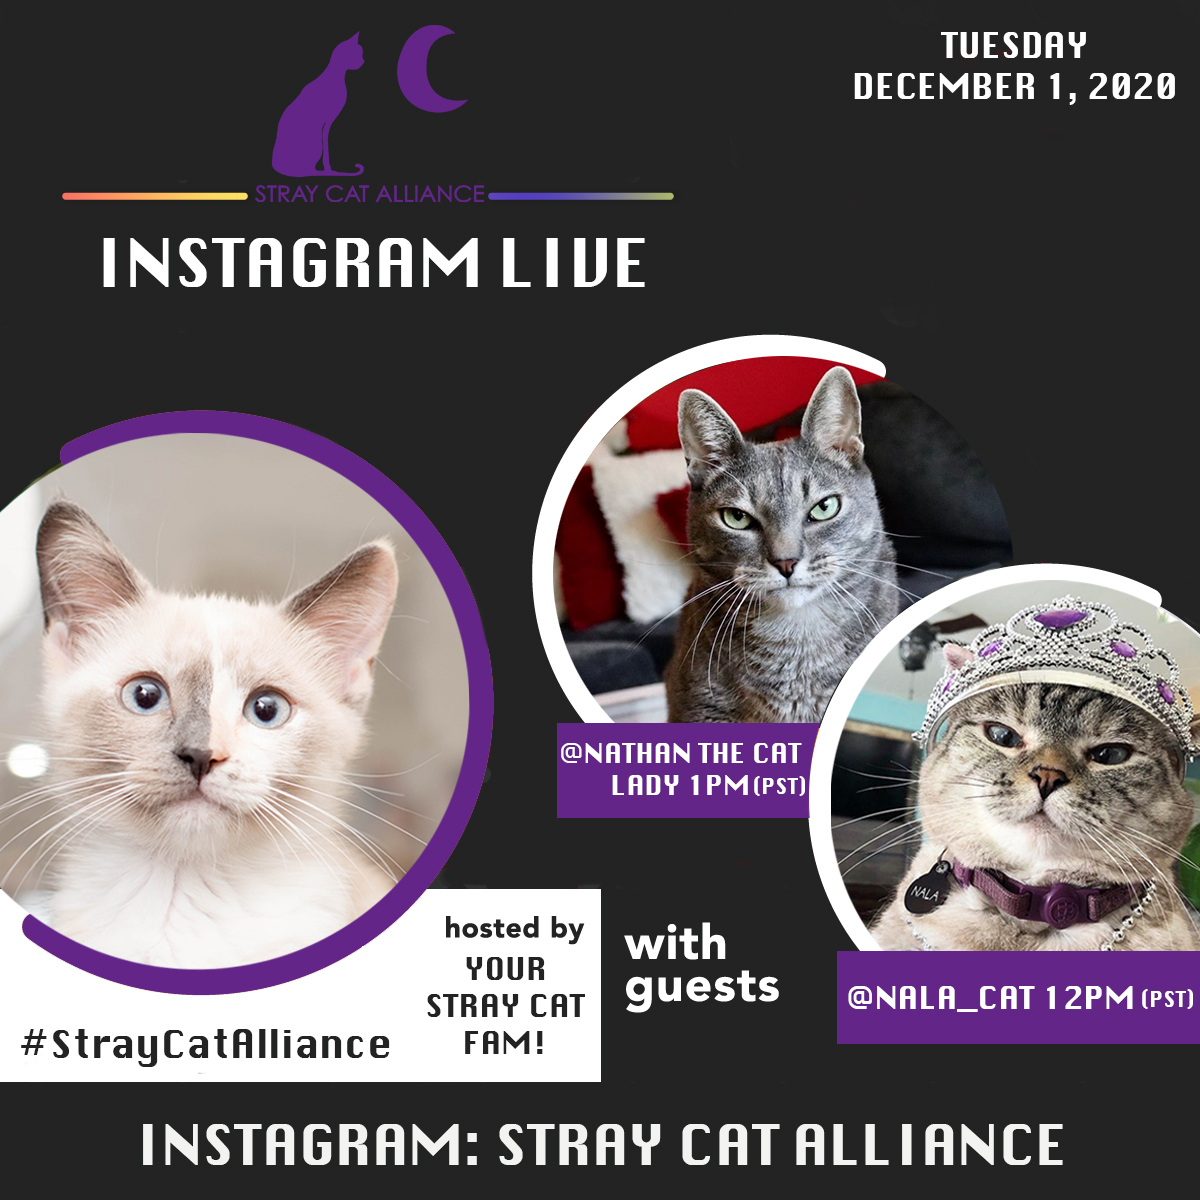 Join us LIVE tomorrow, Tuesday, December 1, for @GIVINGTUESDAY! 😻  We have a lot of fun things planned, and we would love 💜 for you to join us throughout the day! We will be going LIVE with @iamnalacat and @NathantheCL!  Donate early:  #givingtuesday